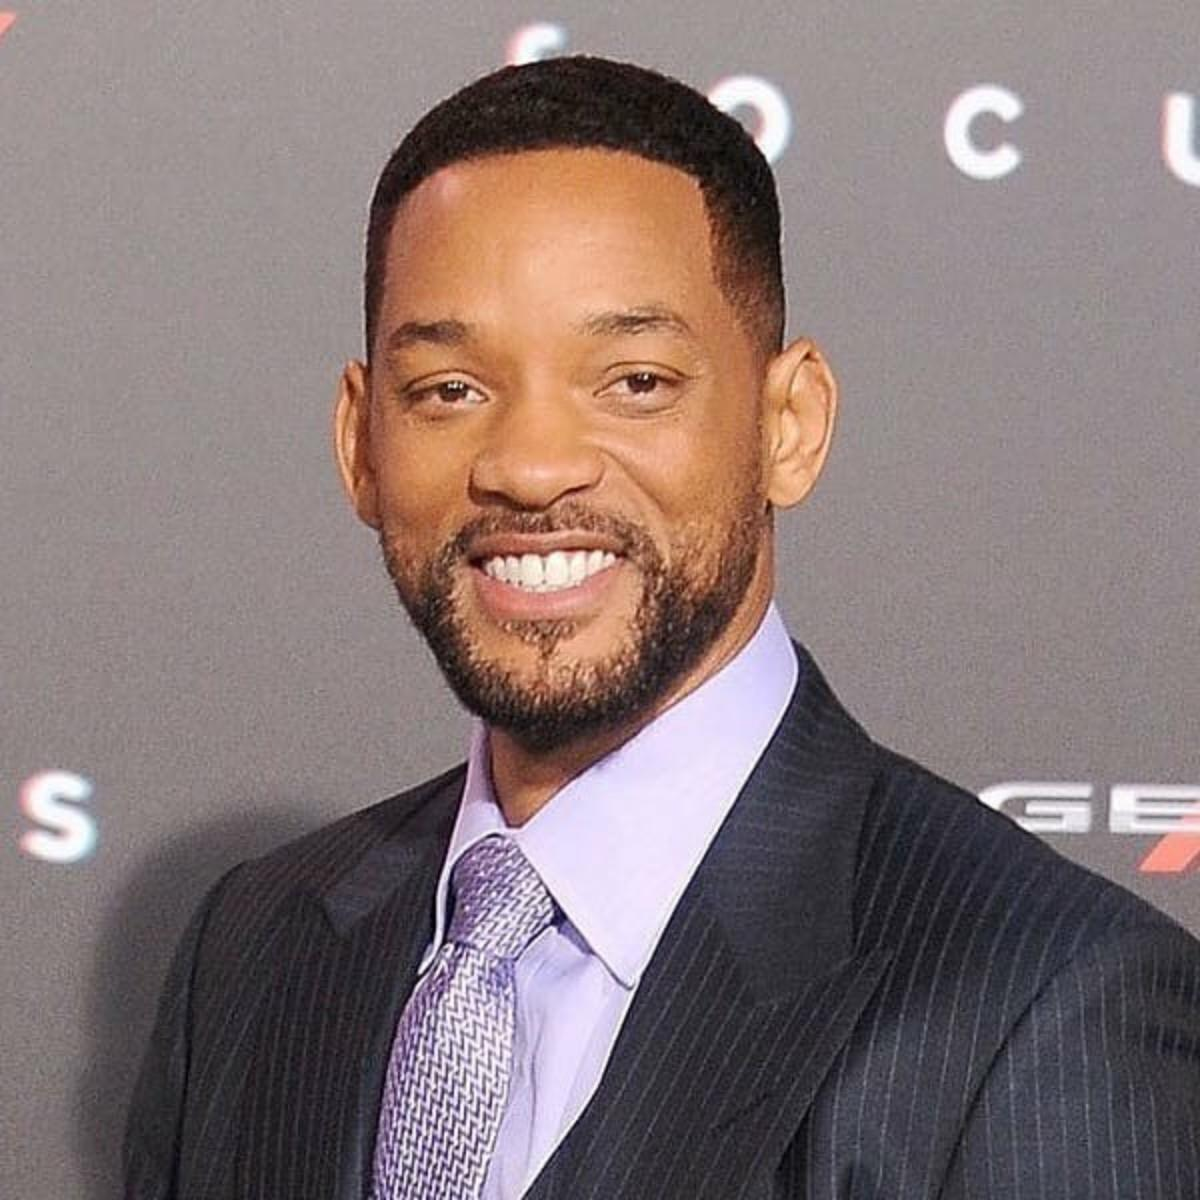 Will Smith cabelo curto natural